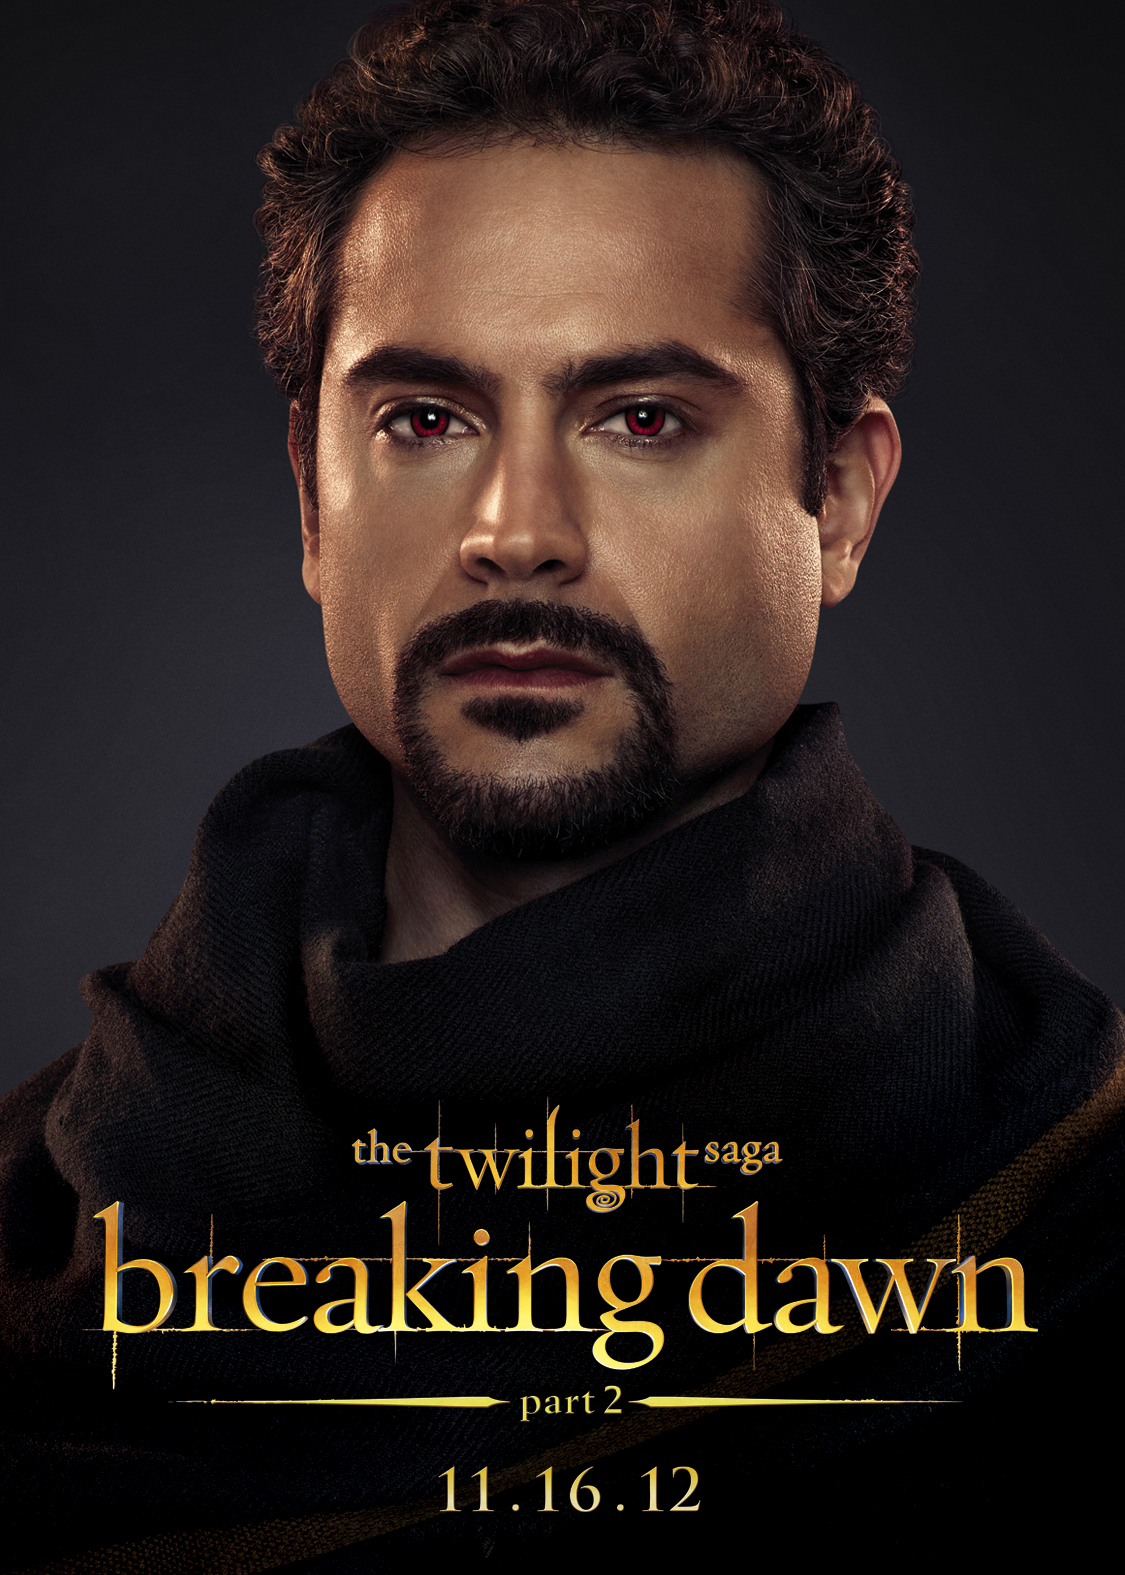 Omar Metwally in The Twilight Saga: Breaking Dawn - Part 2 (2012)